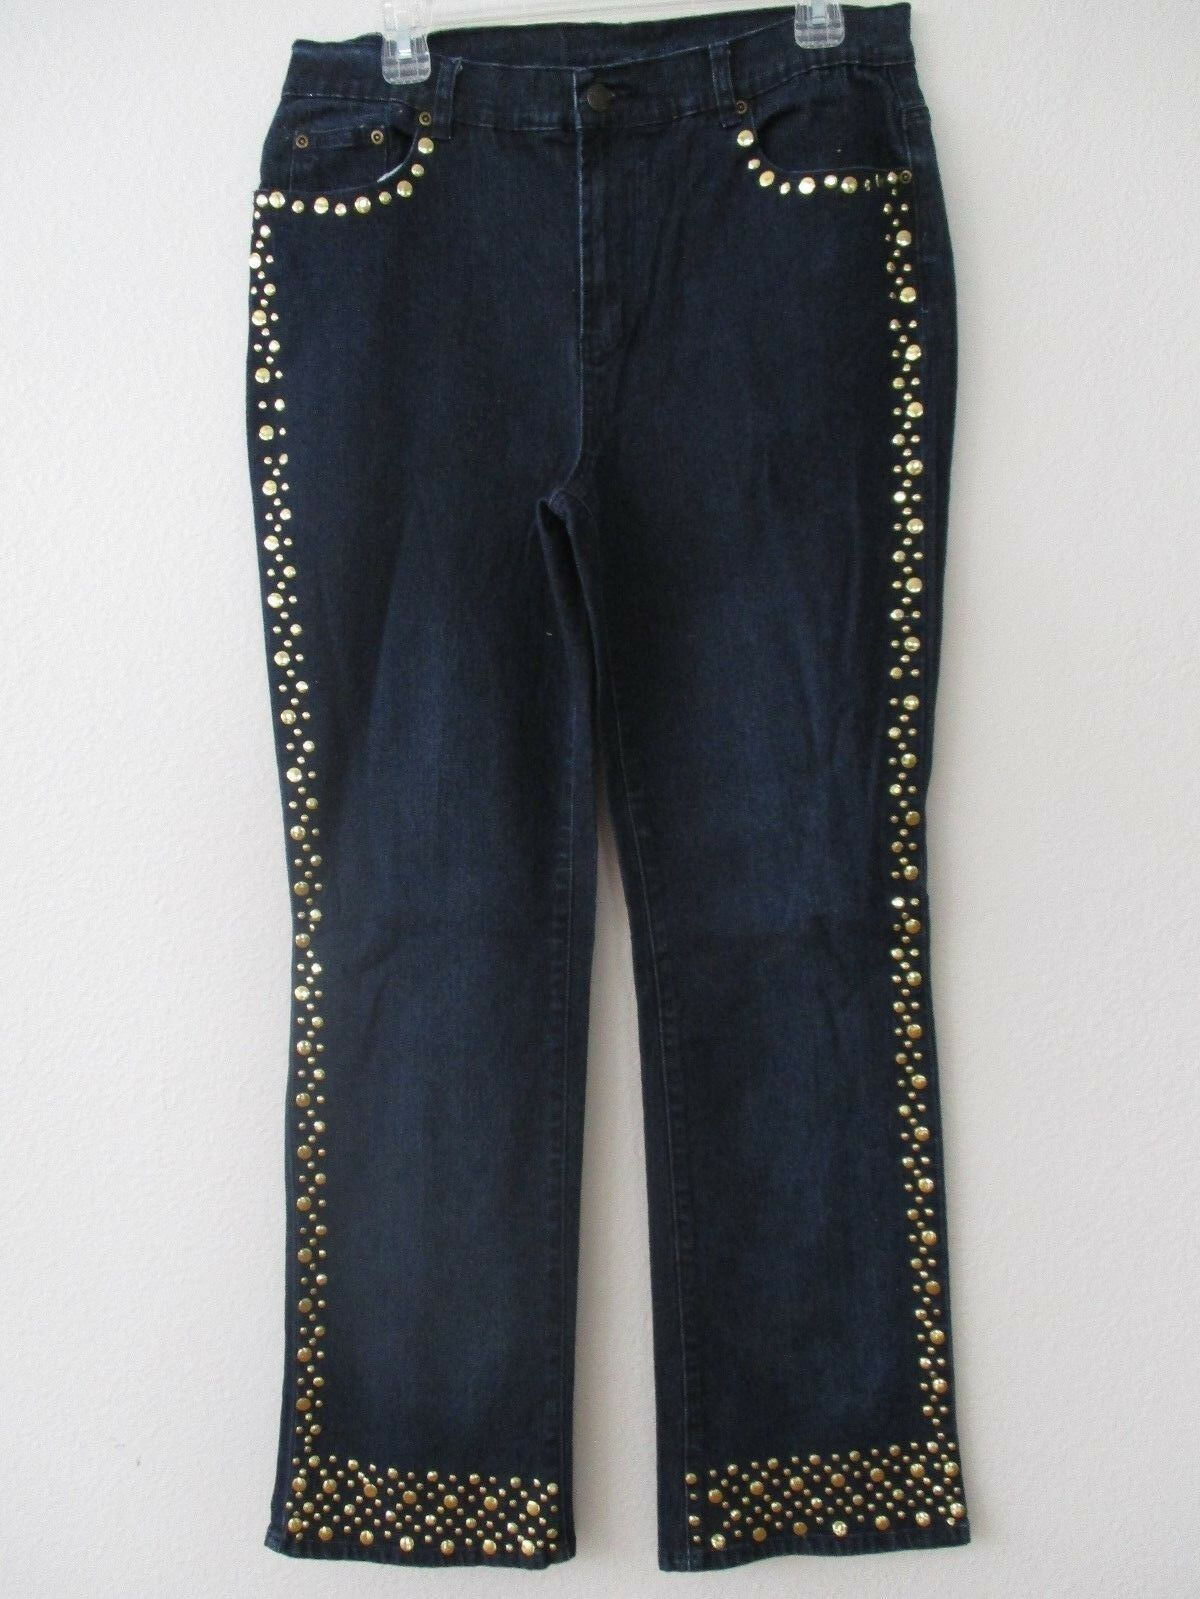 DIANE GILMAN DENIM DARK blueE & gold EMBELLISHED JEANS SIZE 10 - NWT